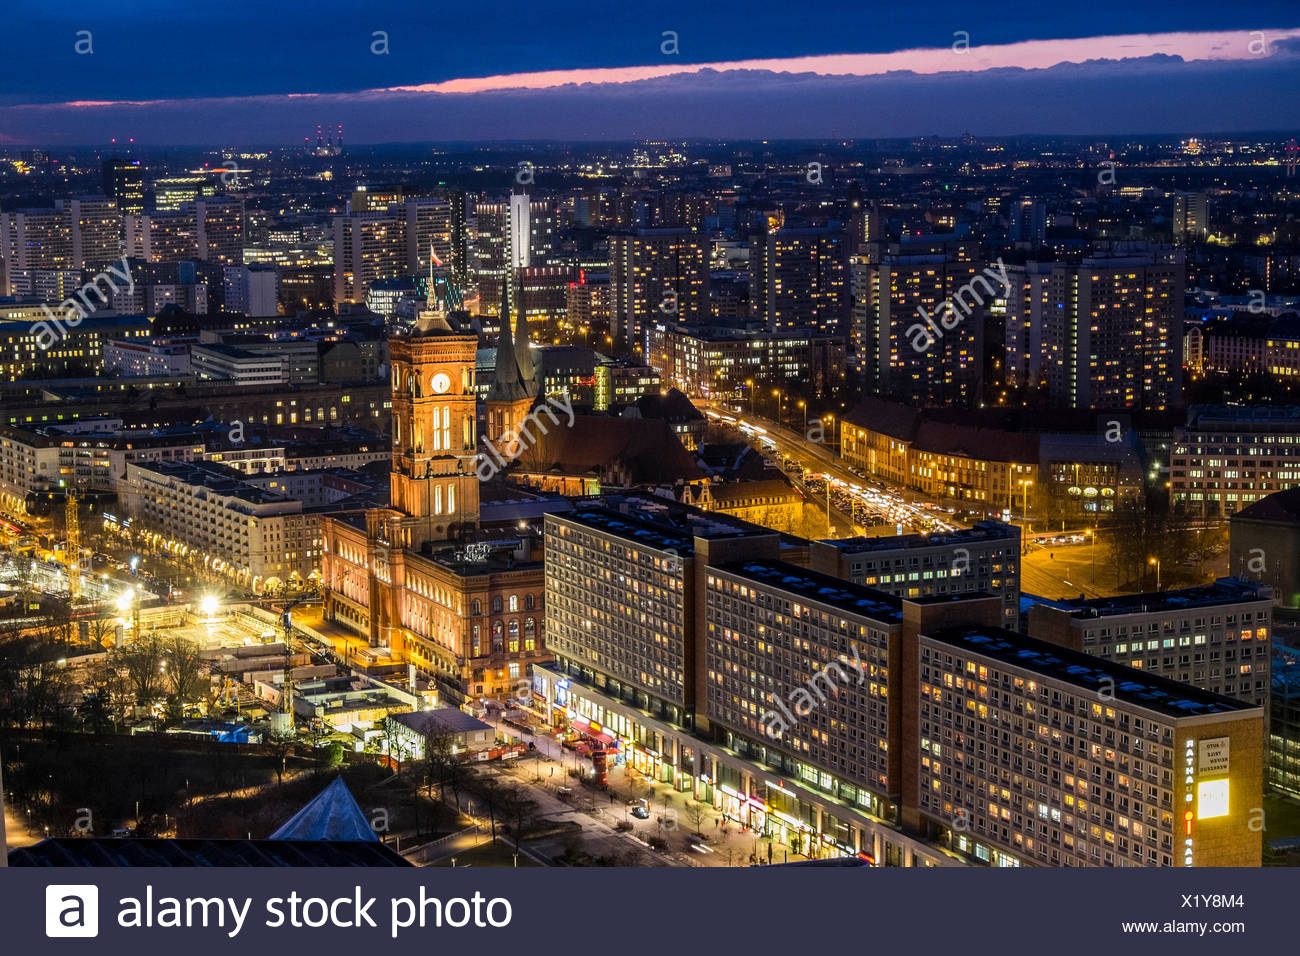 view at sunset towards the townhall, Rotes Rathaus, Berlin Germany - Stock Image